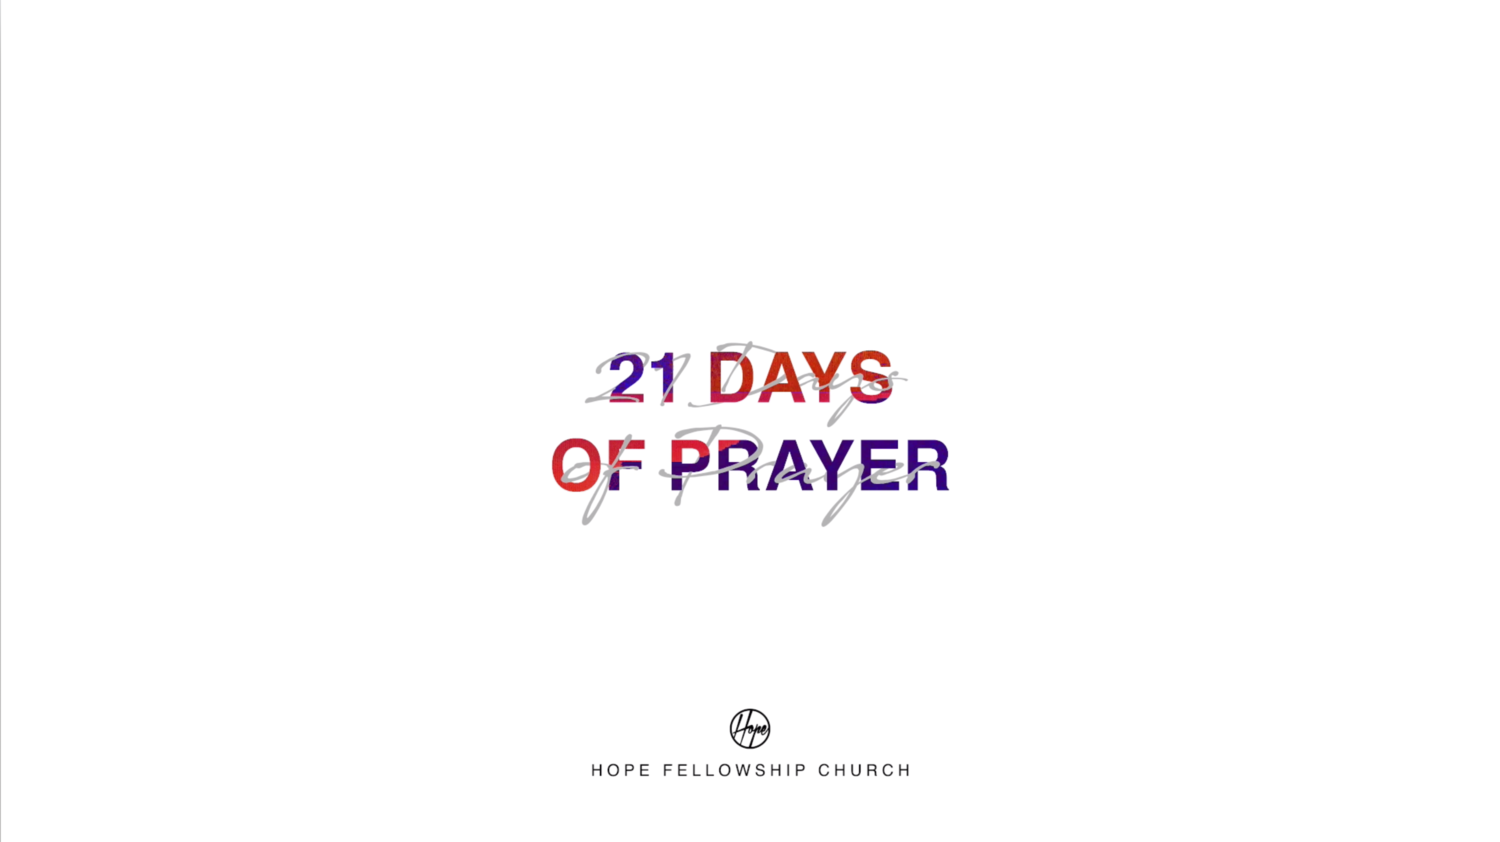 21 Days of Prayer Week 3